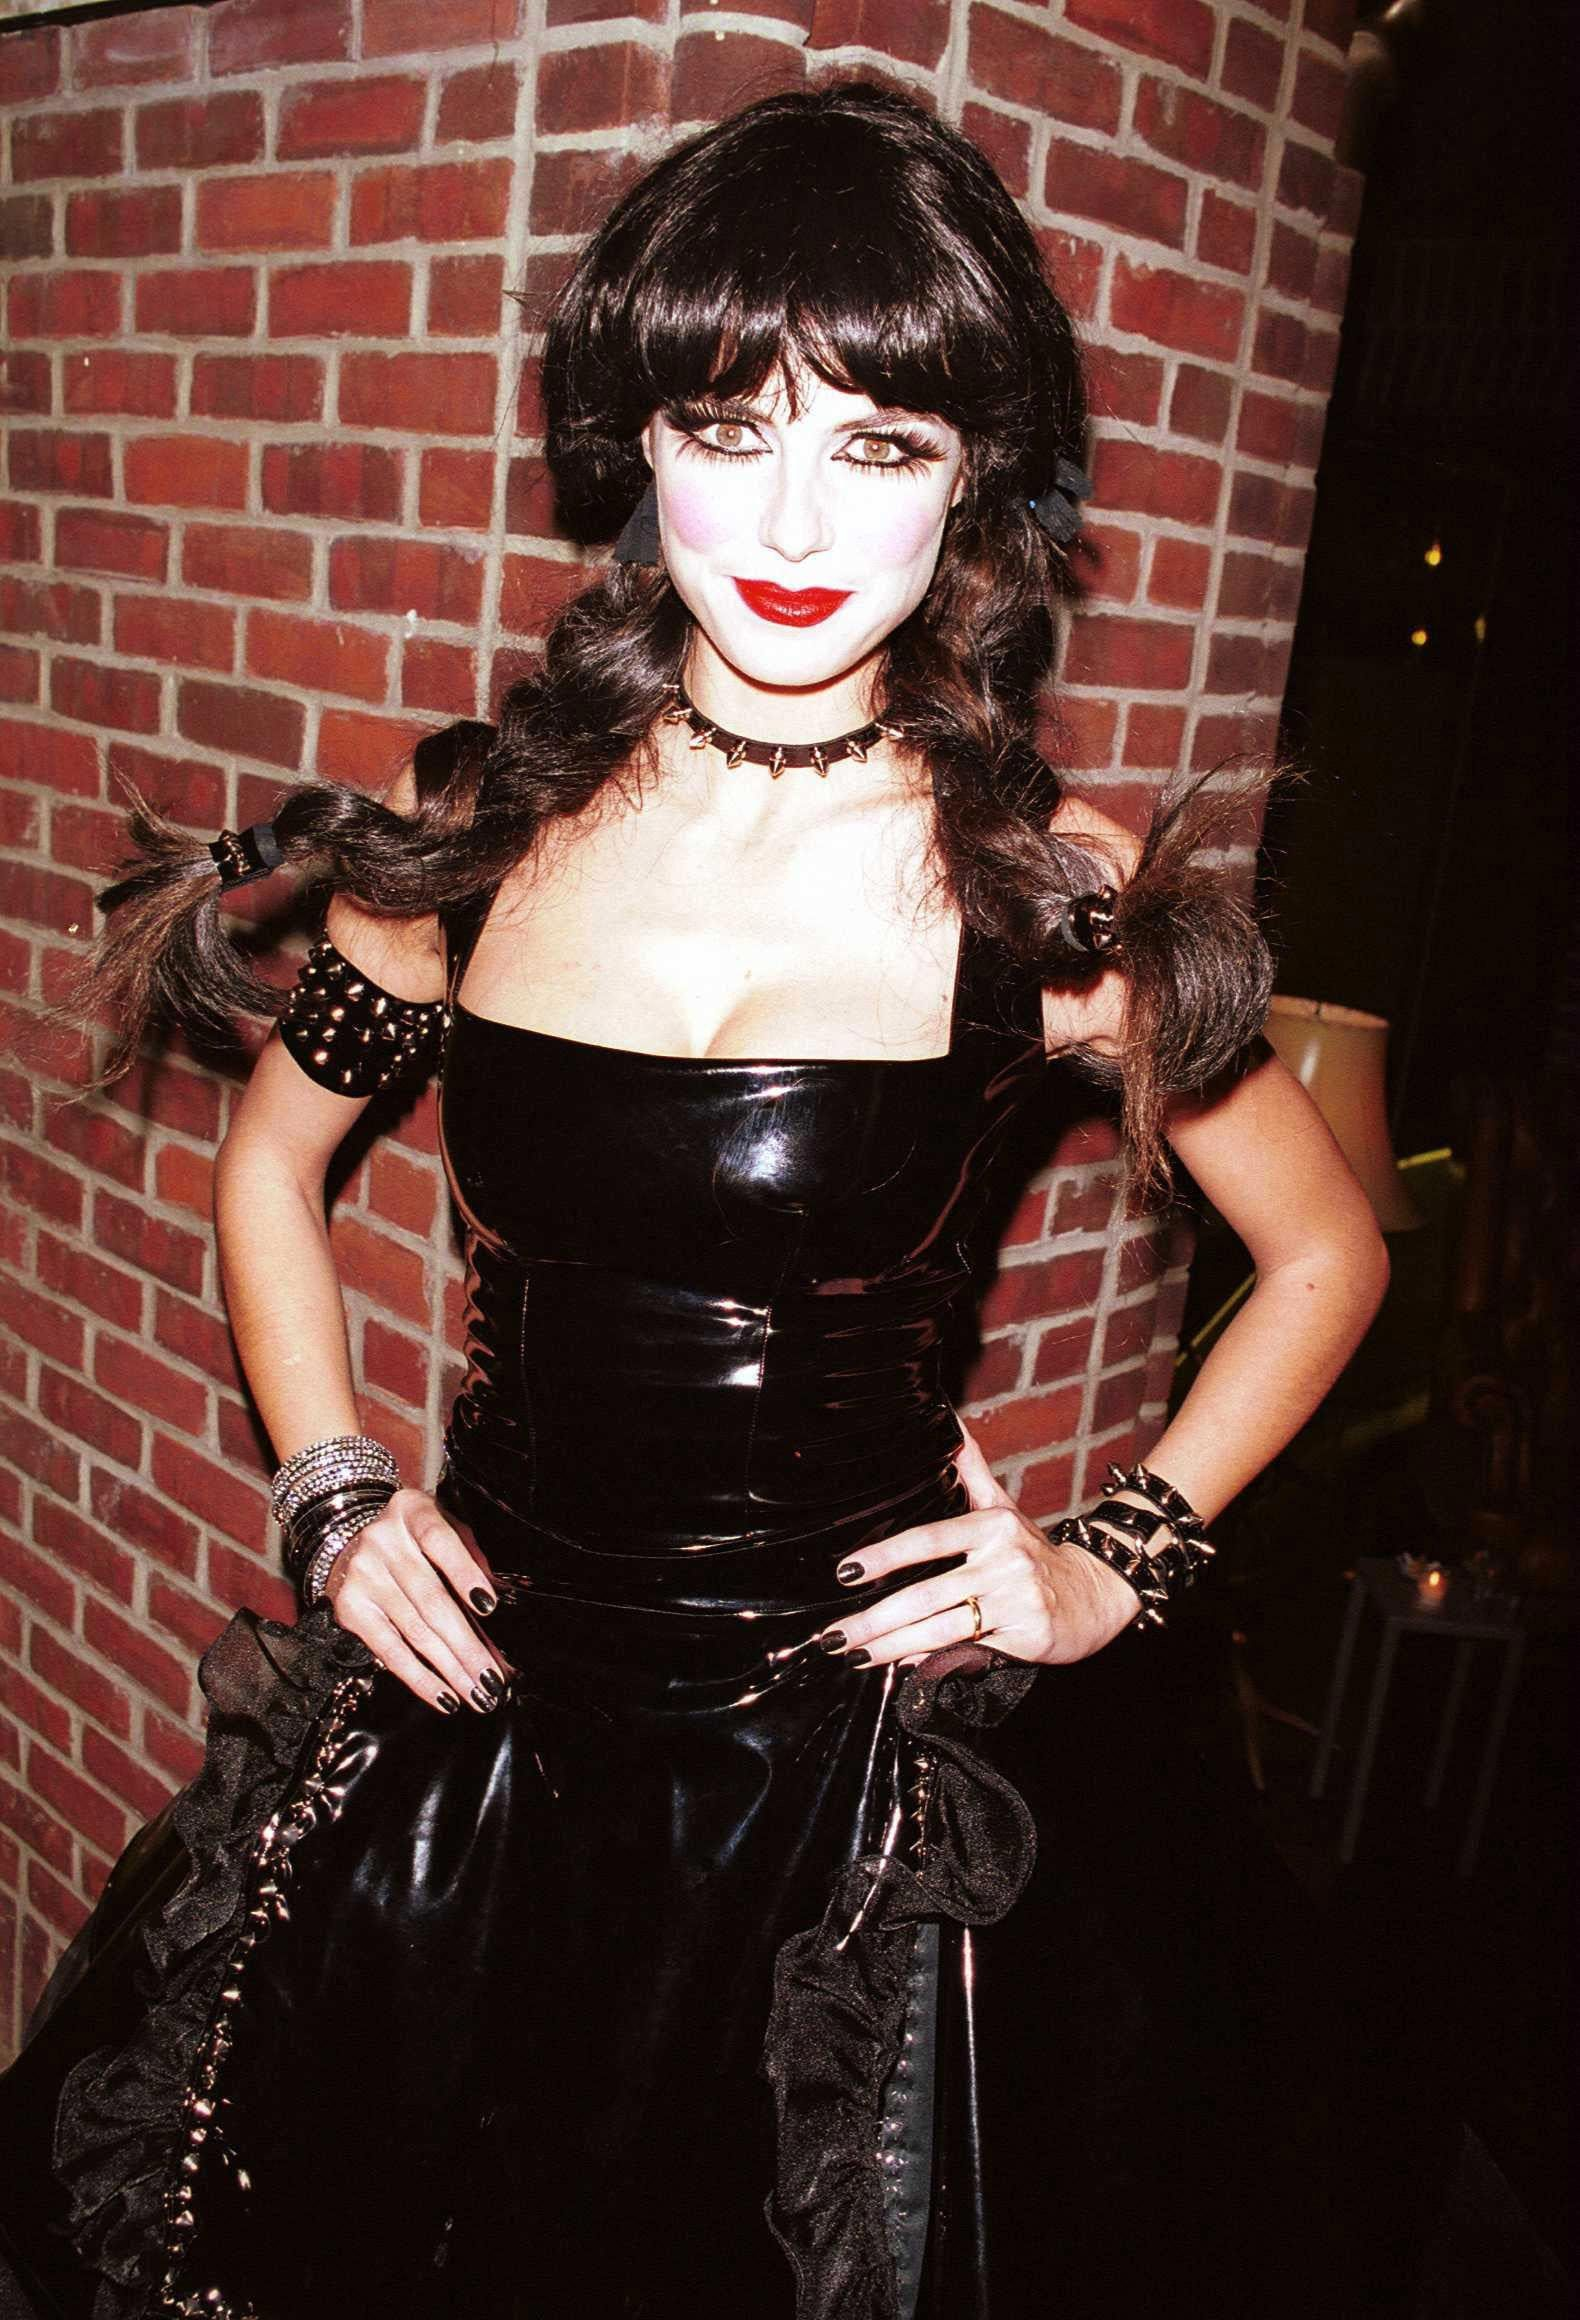 heidi klum halloween costumes over the years — heidi klum halloween